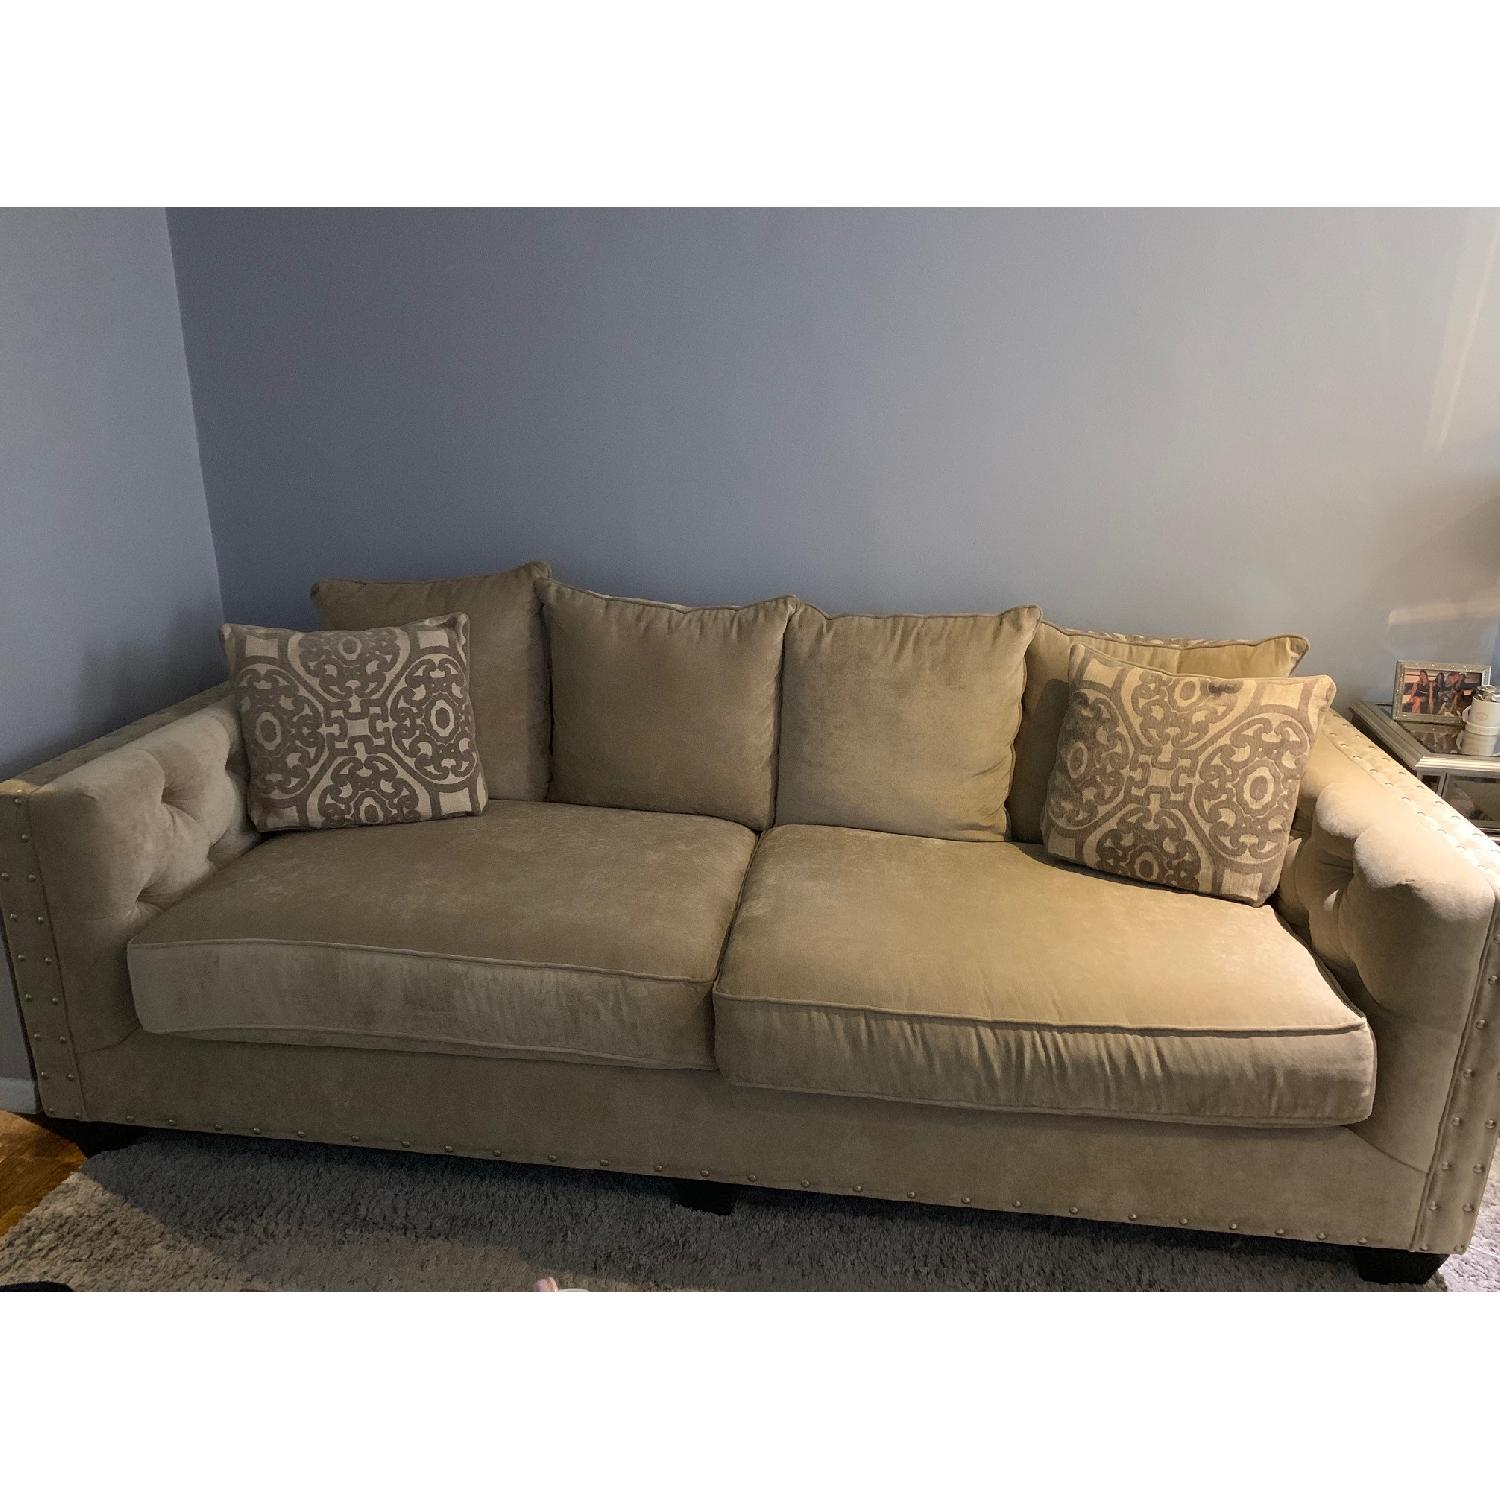 Raymour & Flanigan Sofa w/ Tufted Button Detail - image-2